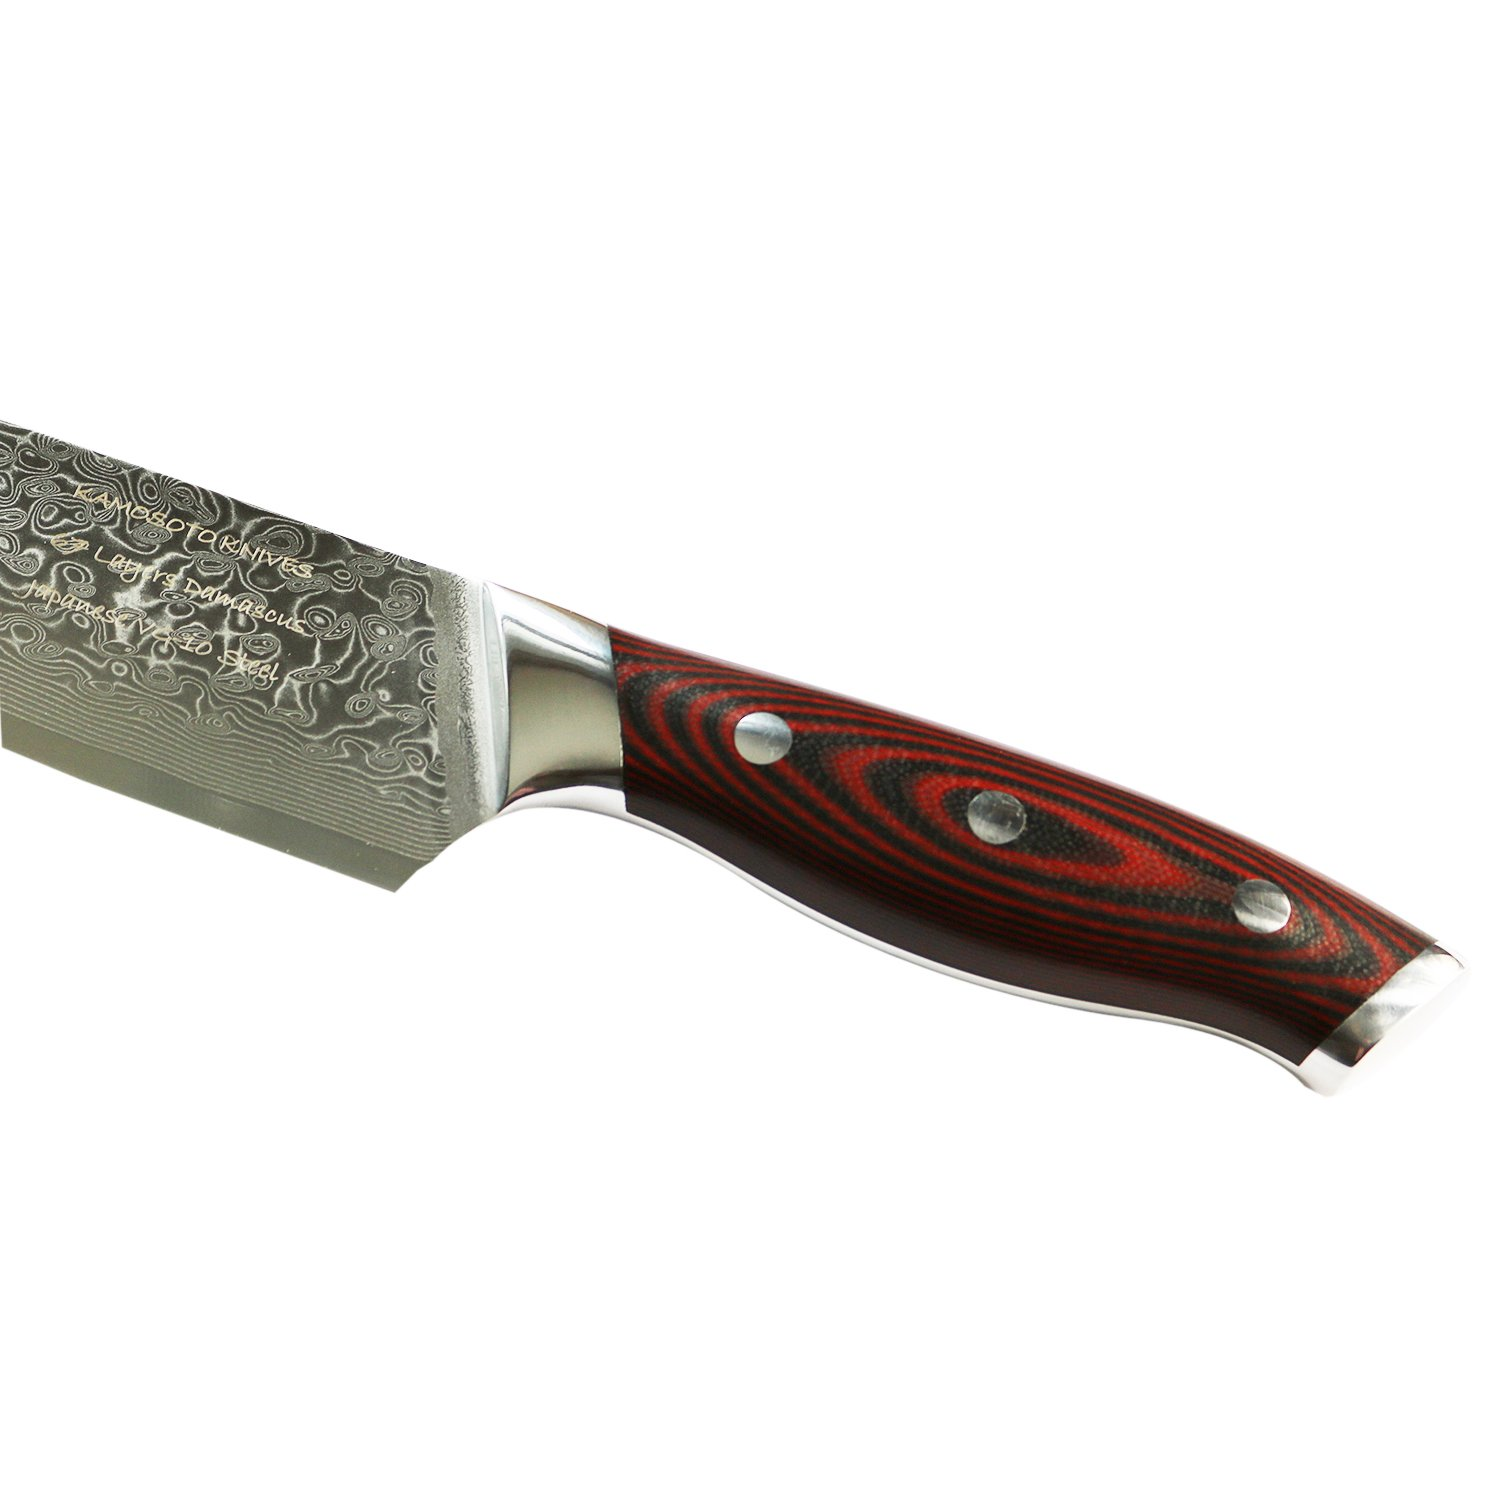 8 inch professional damascus chef knife by kamosoto with high